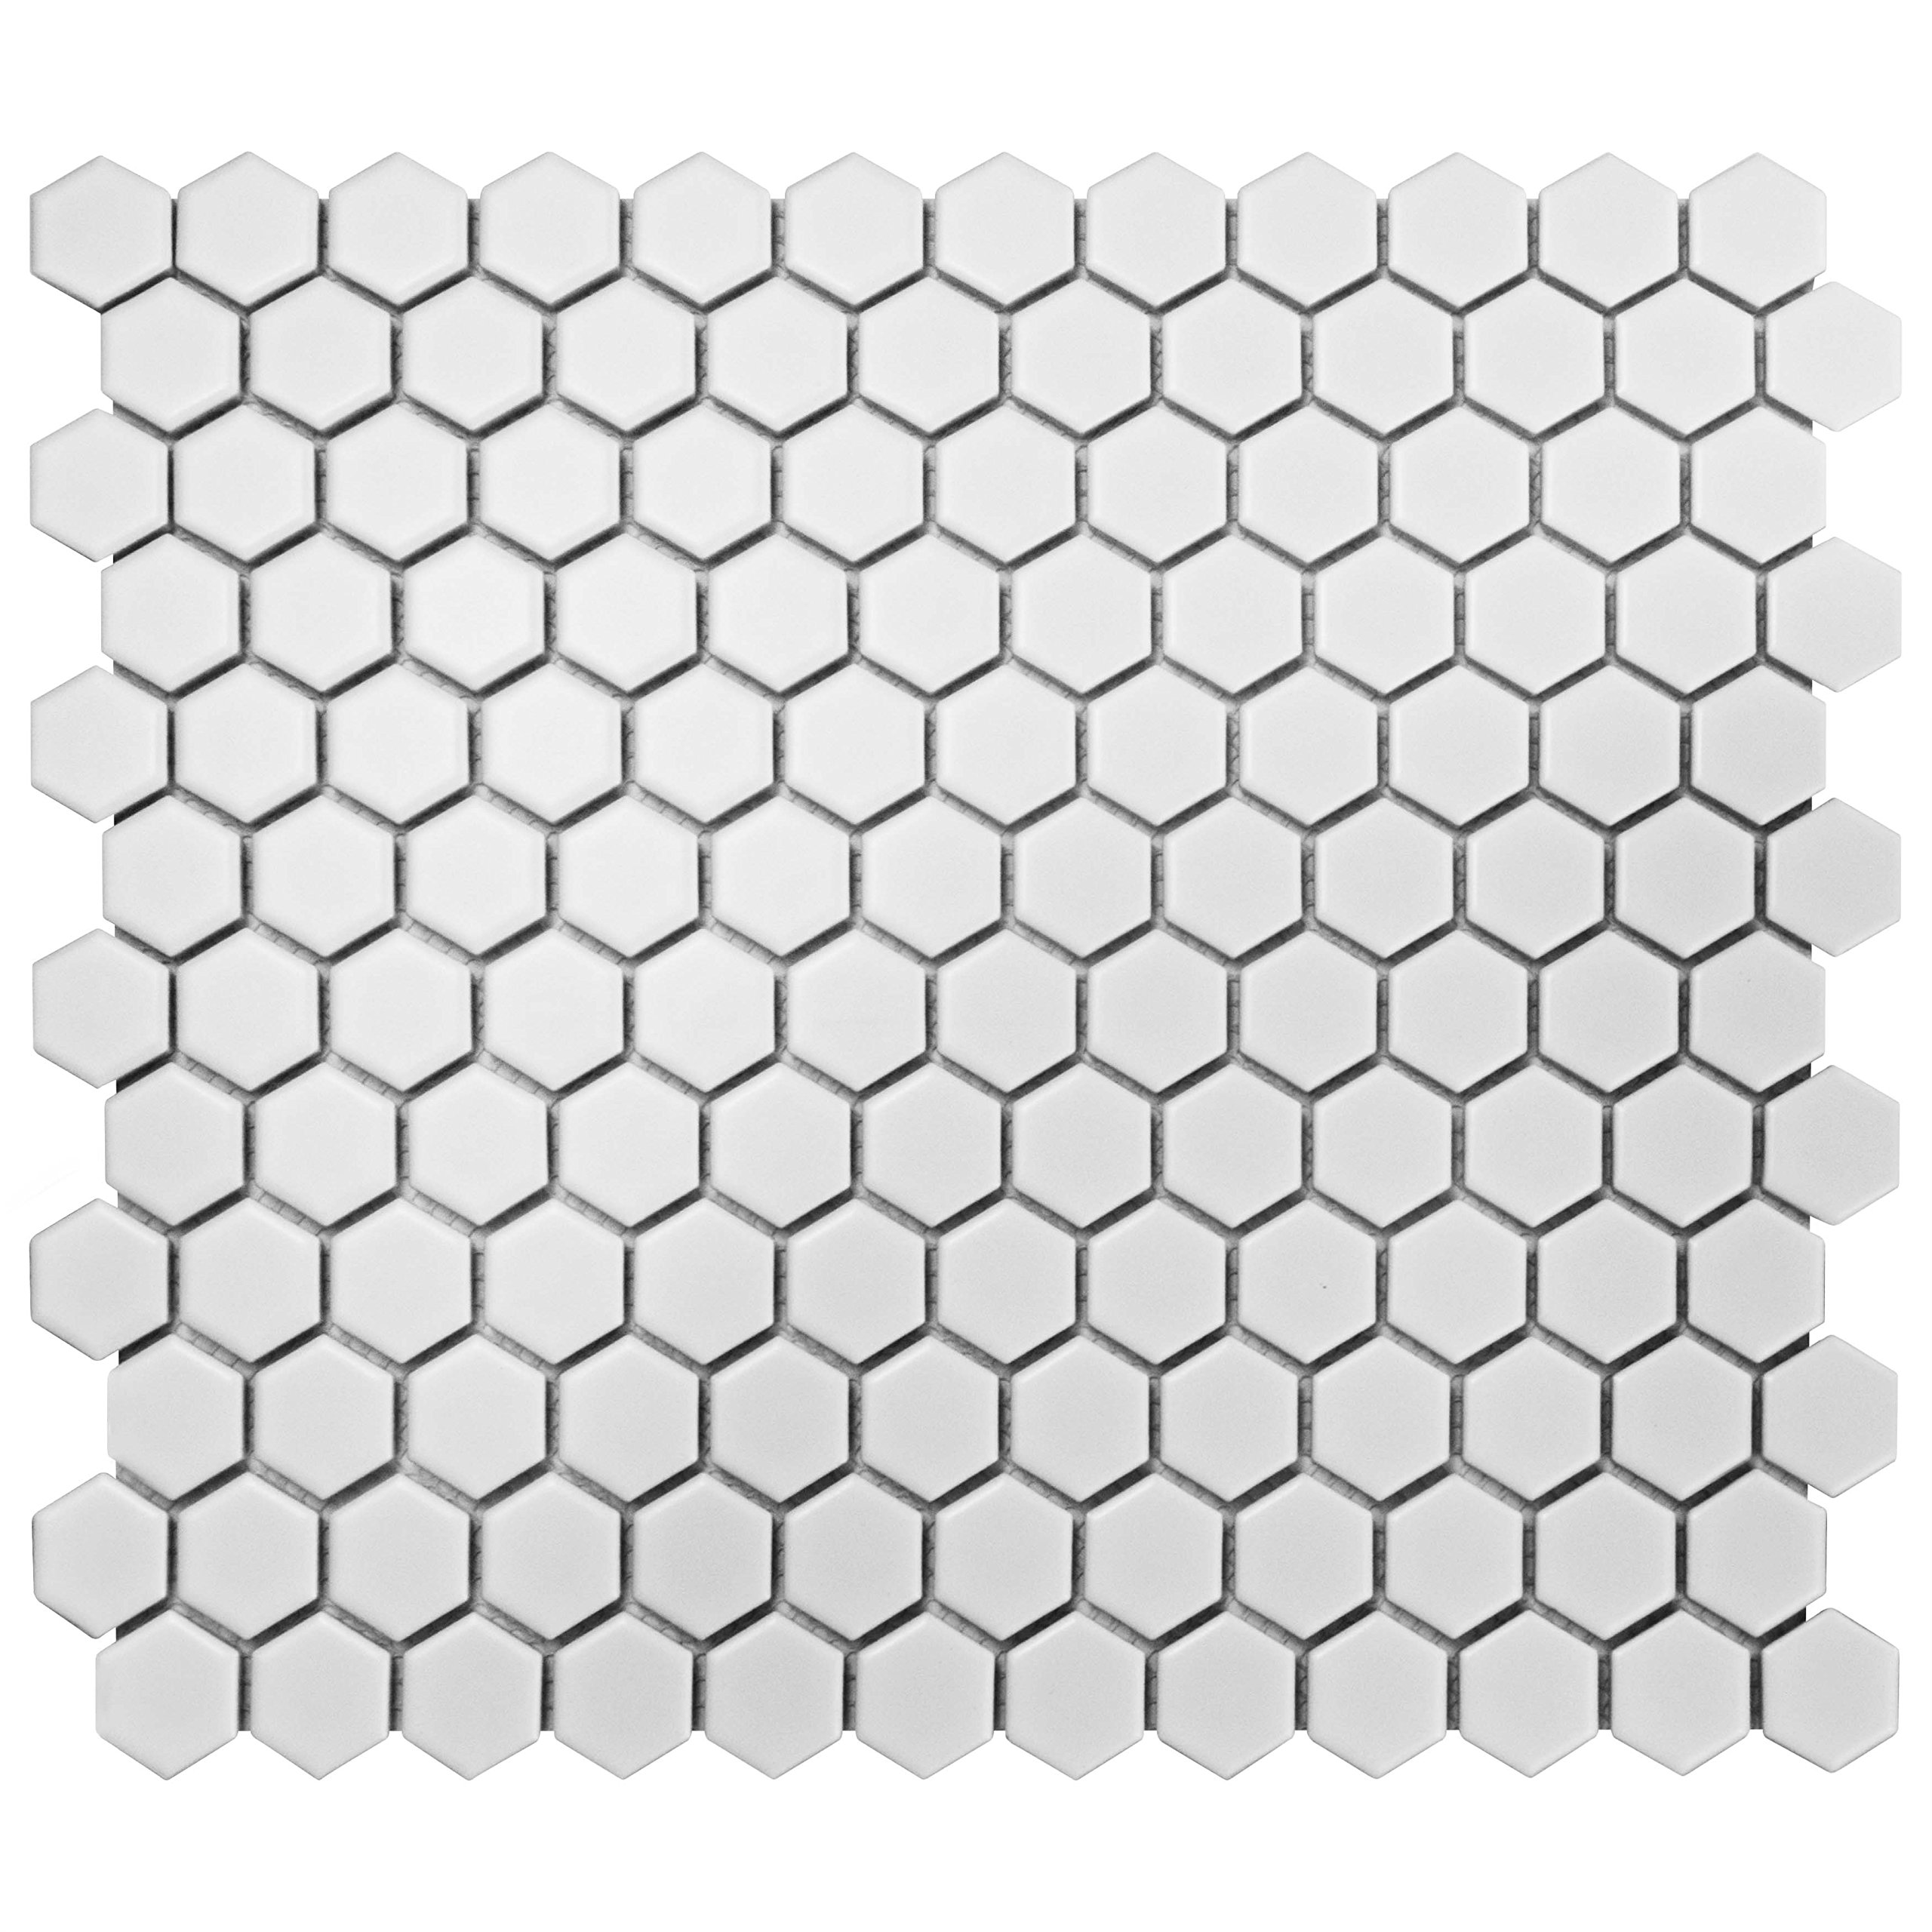 SomerTile FDXMHMW Retro Hex Porcelain Floor and Wall Tile, 10.25'' x 11.75'', Matte White